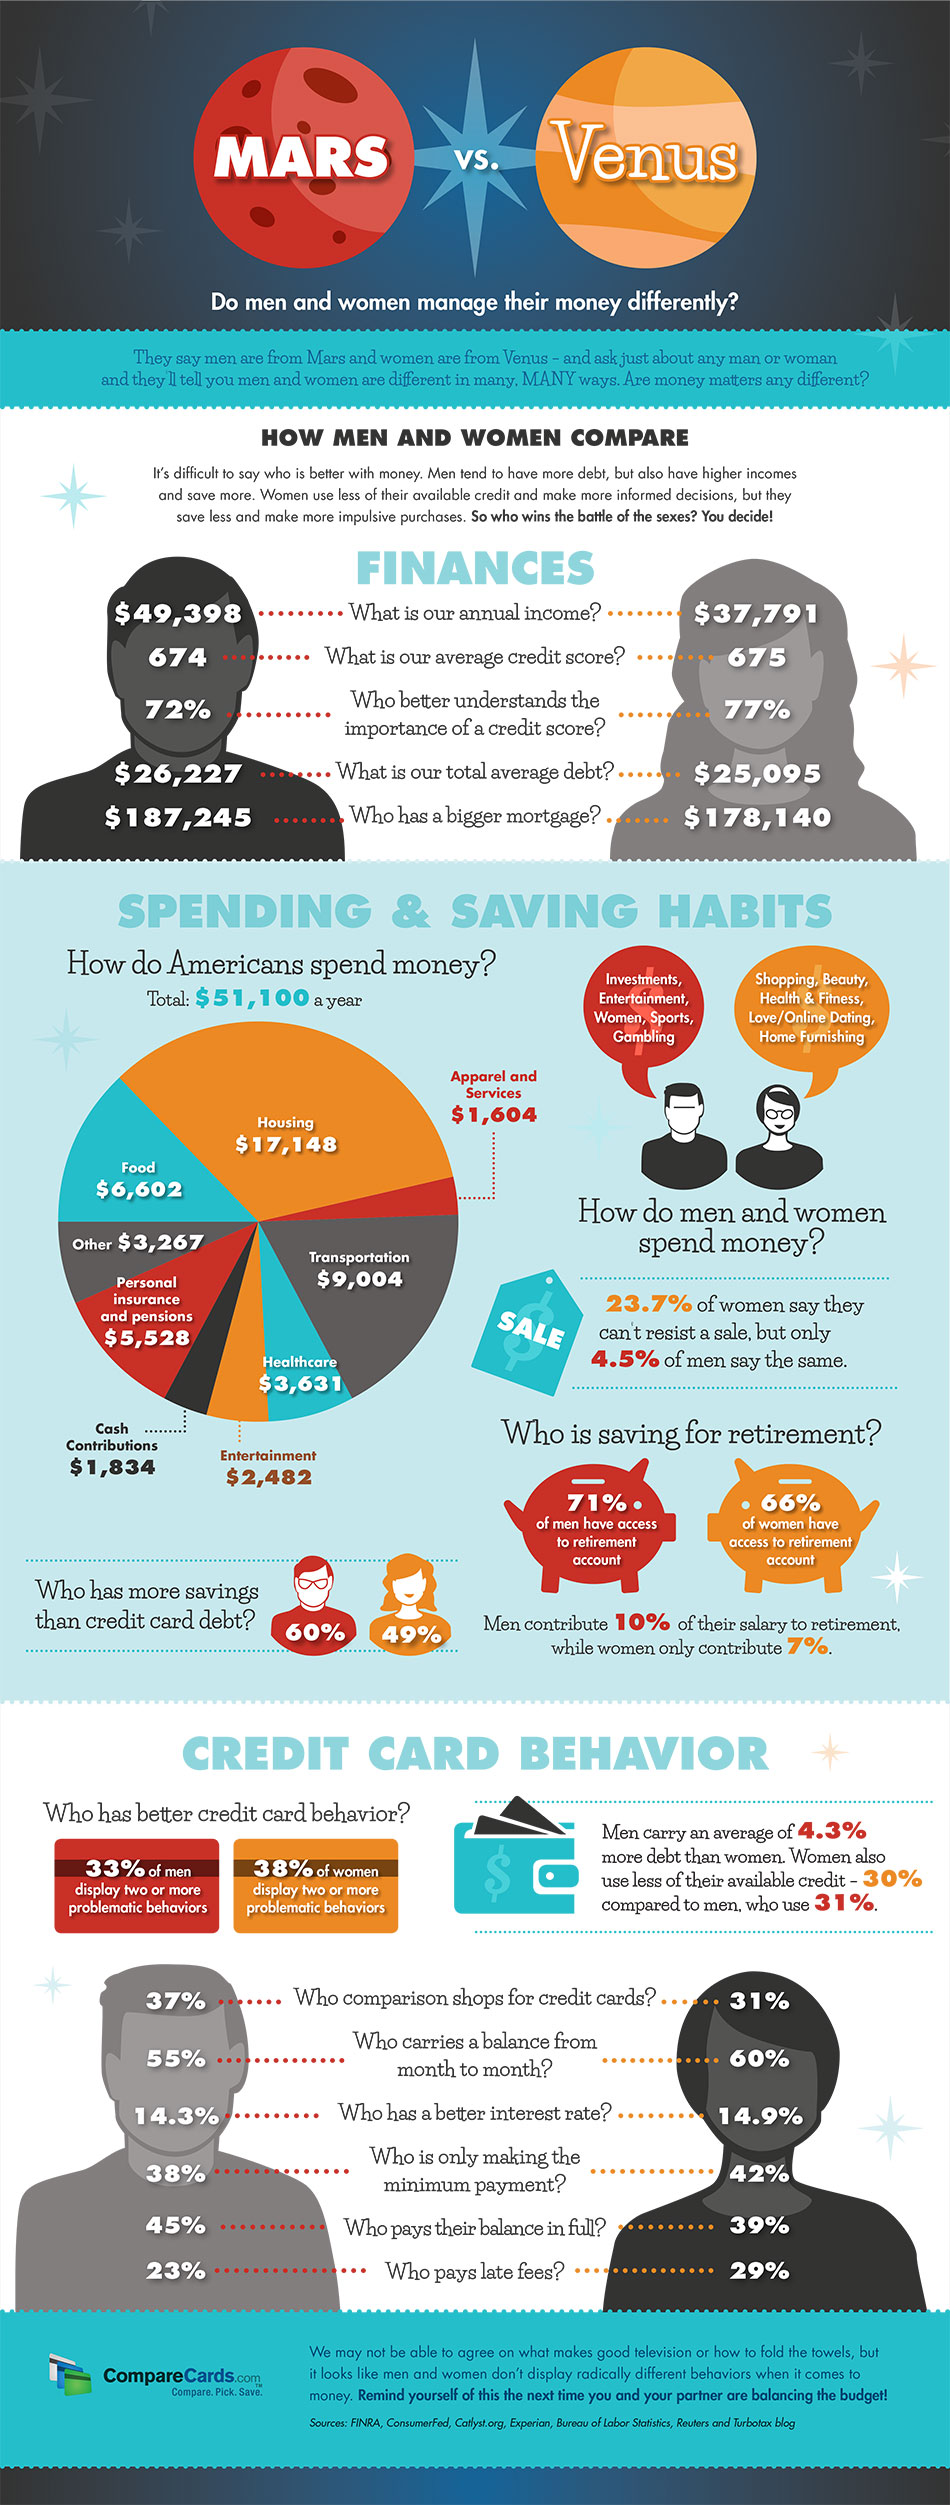 Men vs Women: Do They Manage Money Differently